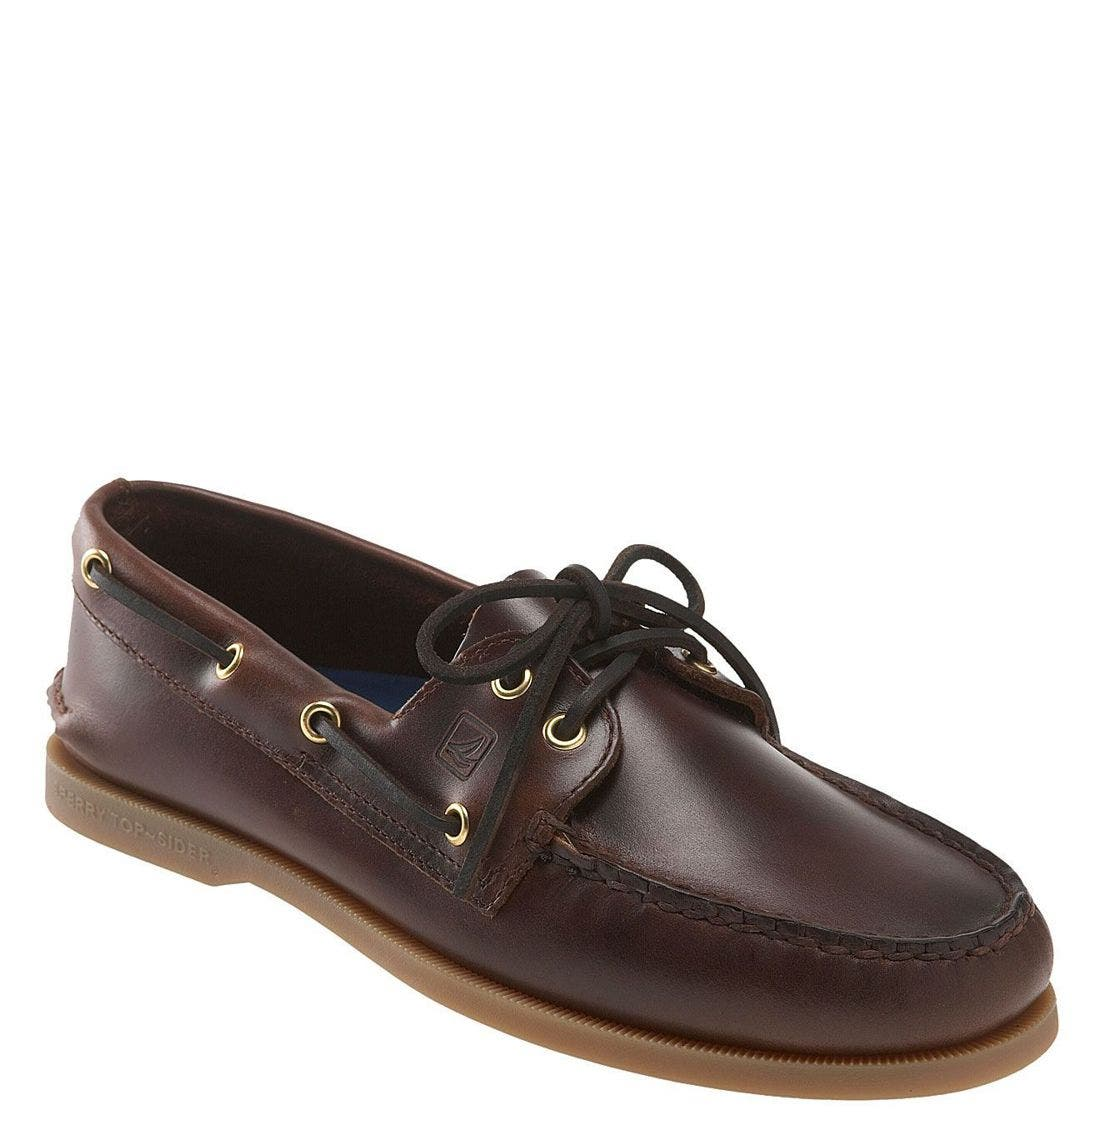 Main Image - Sperry 'Authentic Original' Boat Shoe (Men)